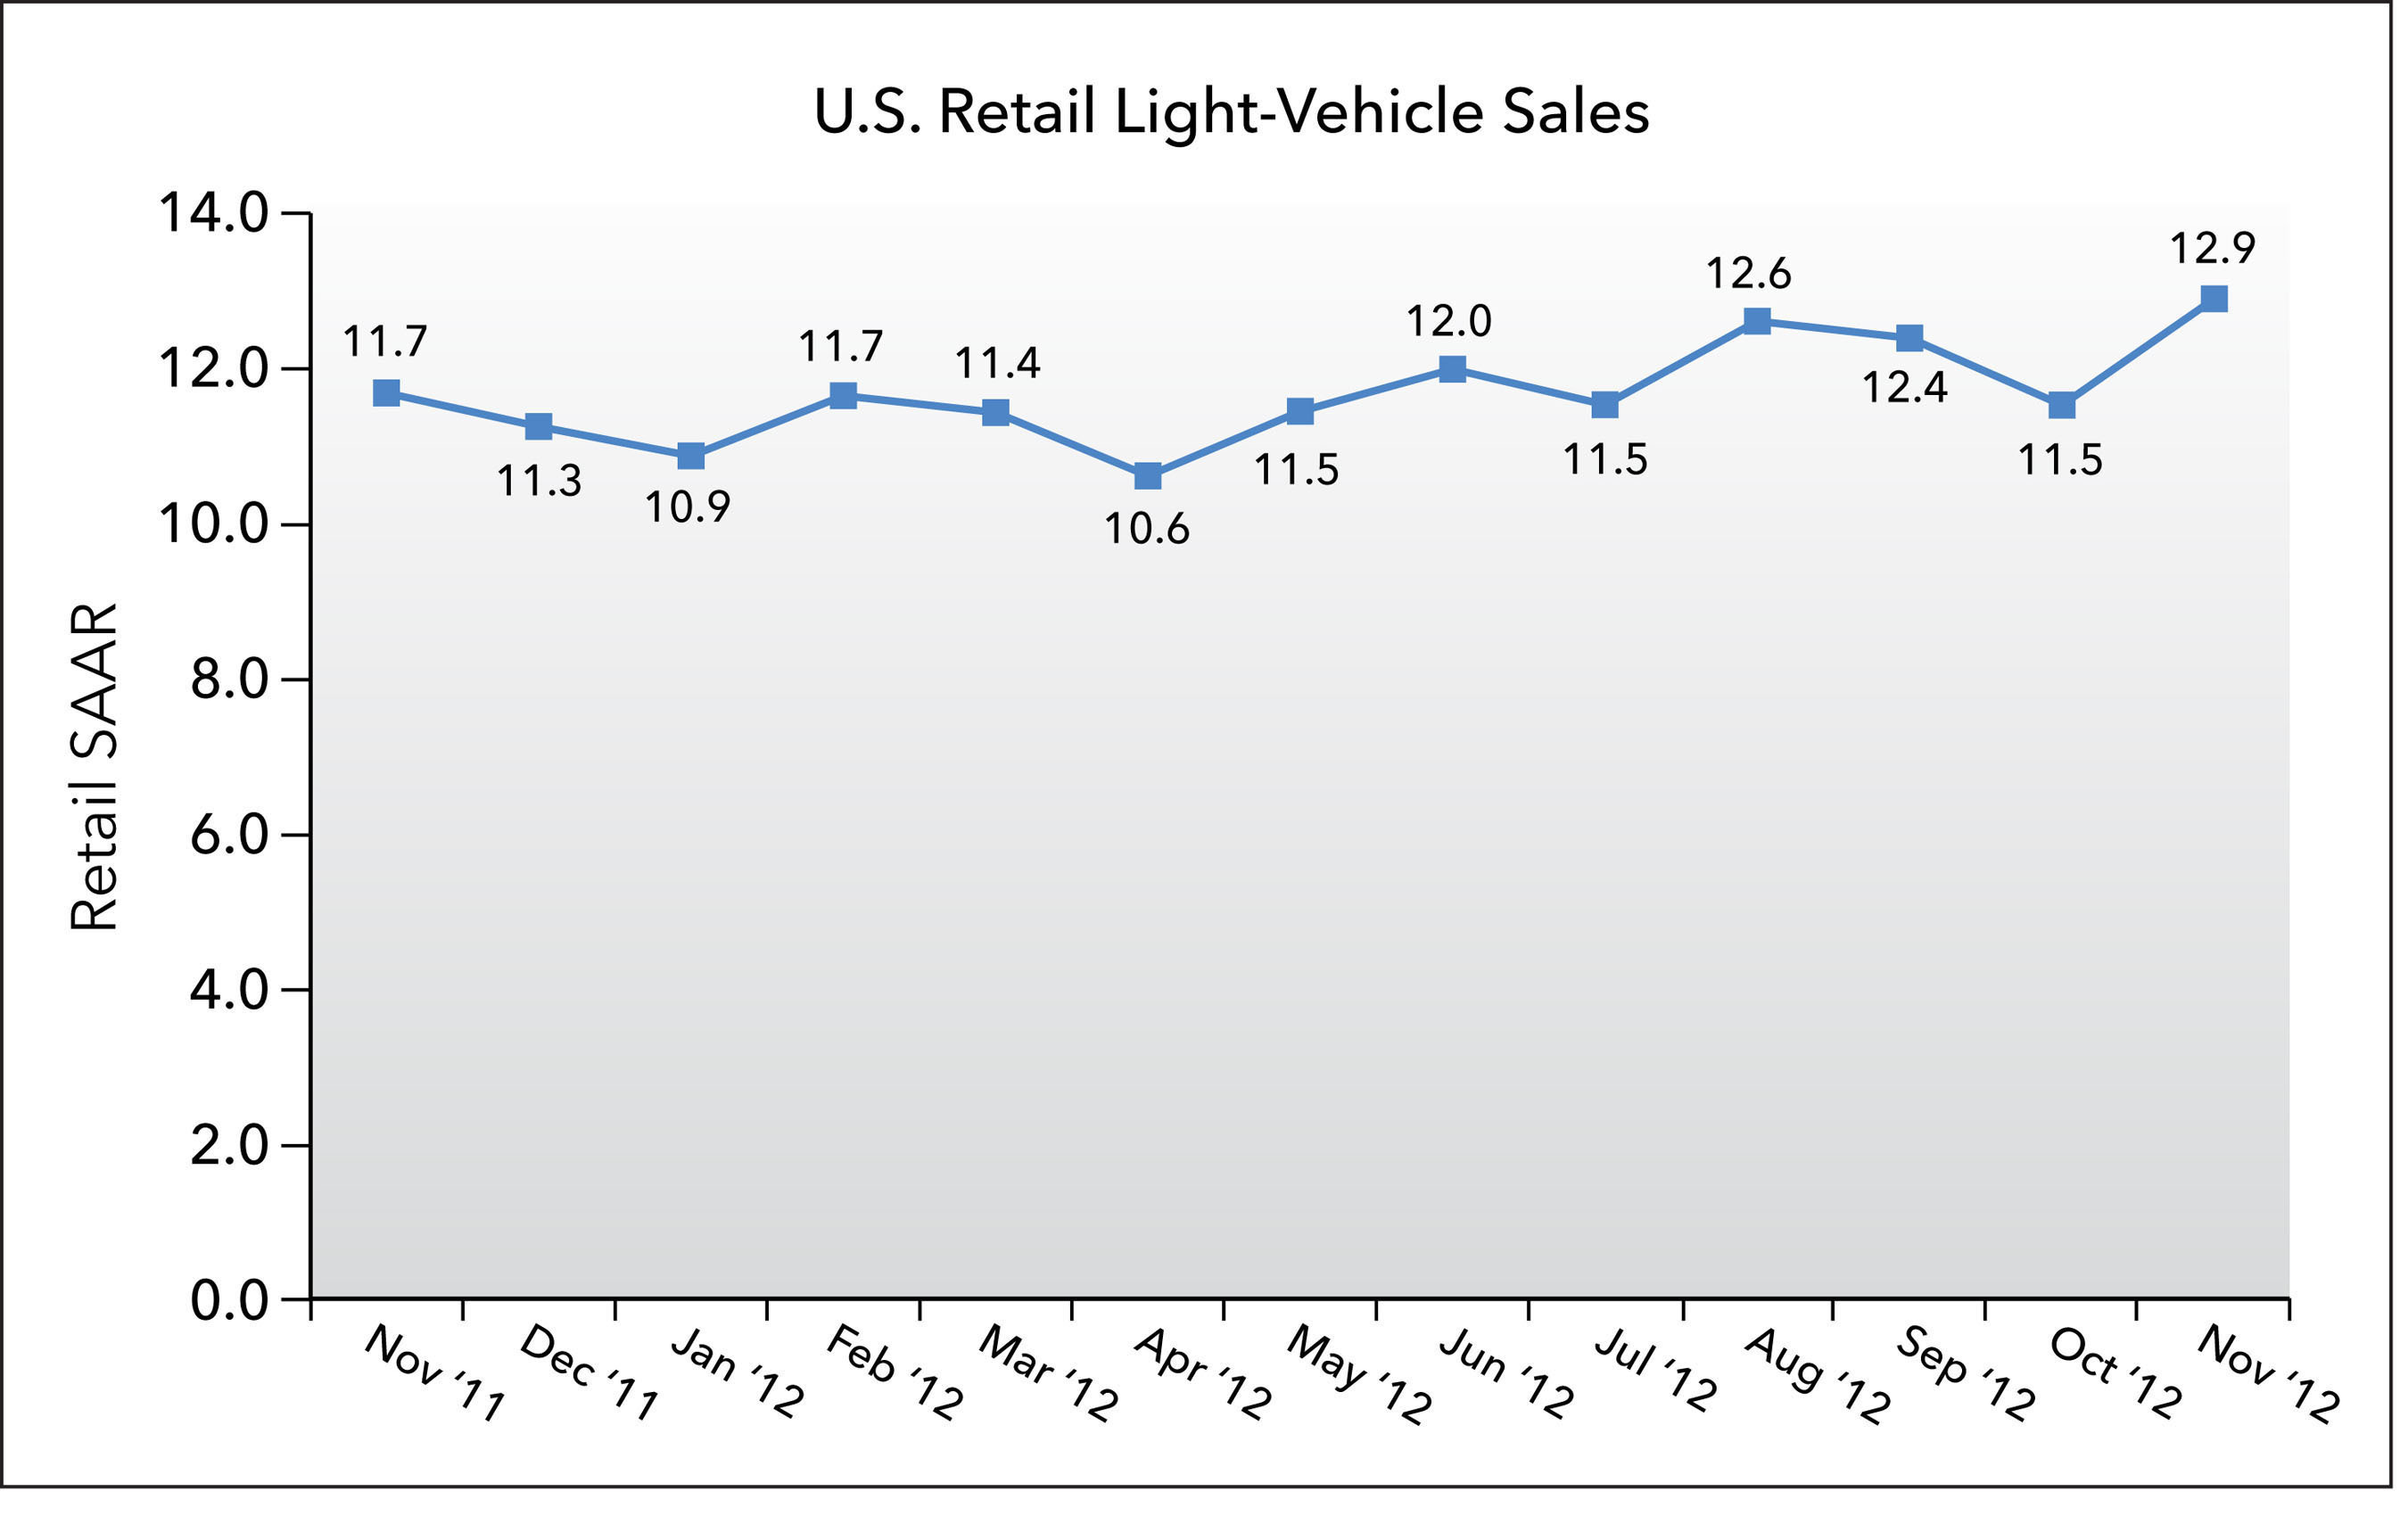 J.D. Power and LMC Automotive Report: November New-Vehicle Retail Selling Rate Bounces Back Strong